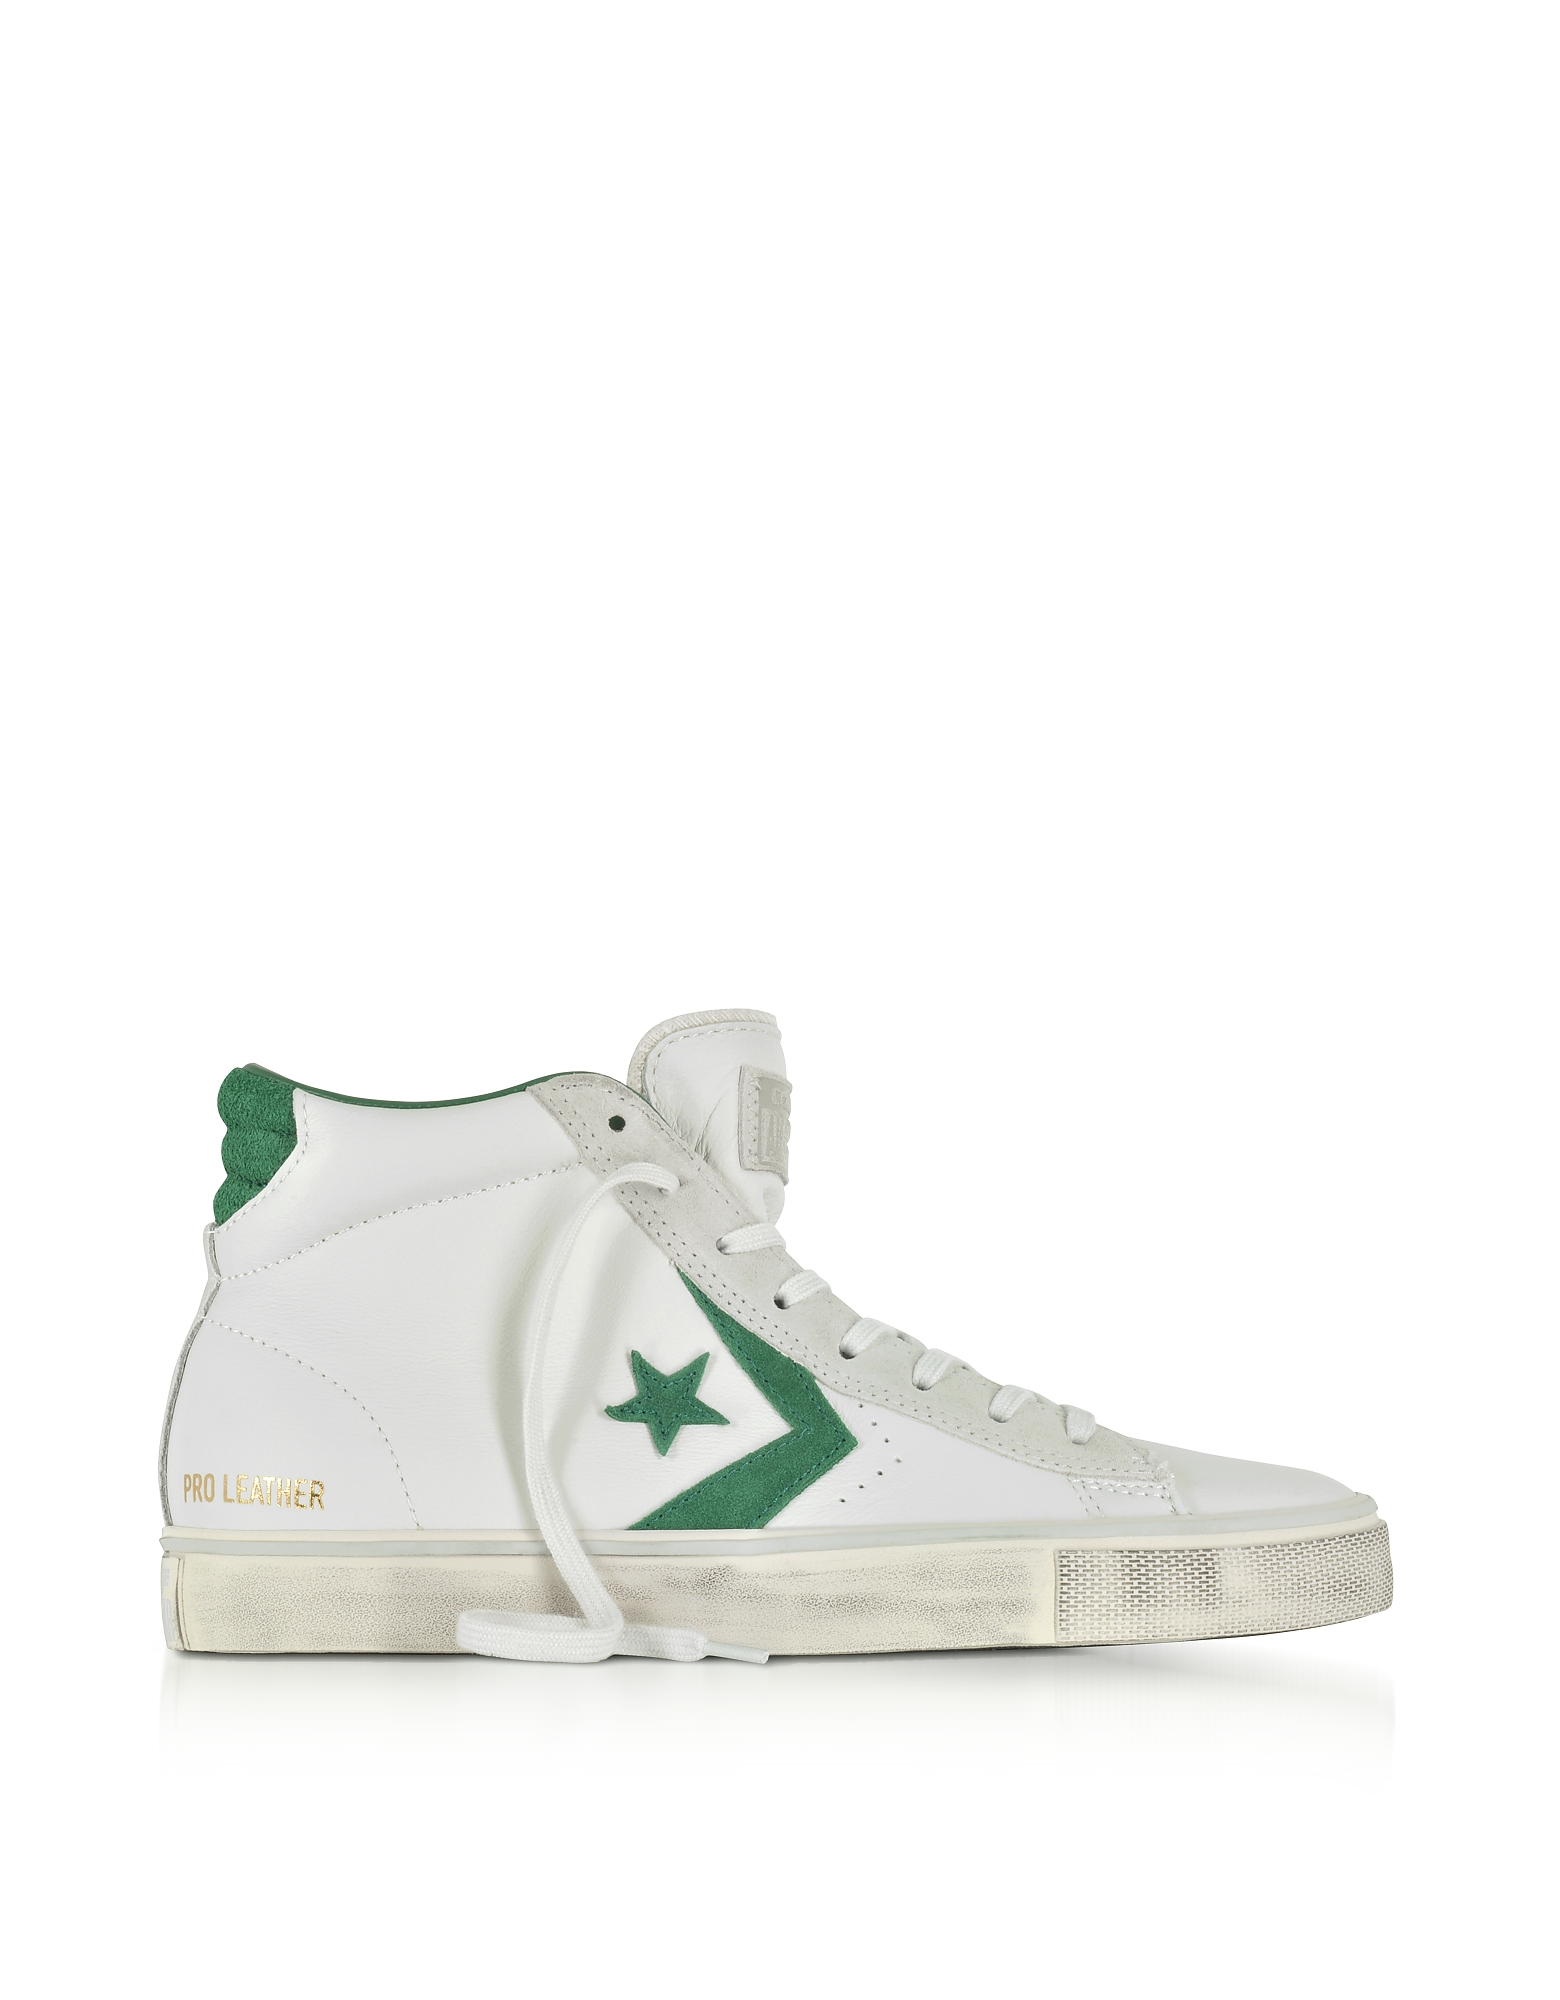 Converse Limited Edition Shoes, Pro Leather Vulc Mid Distressed White Leather and Pine Green Suede S